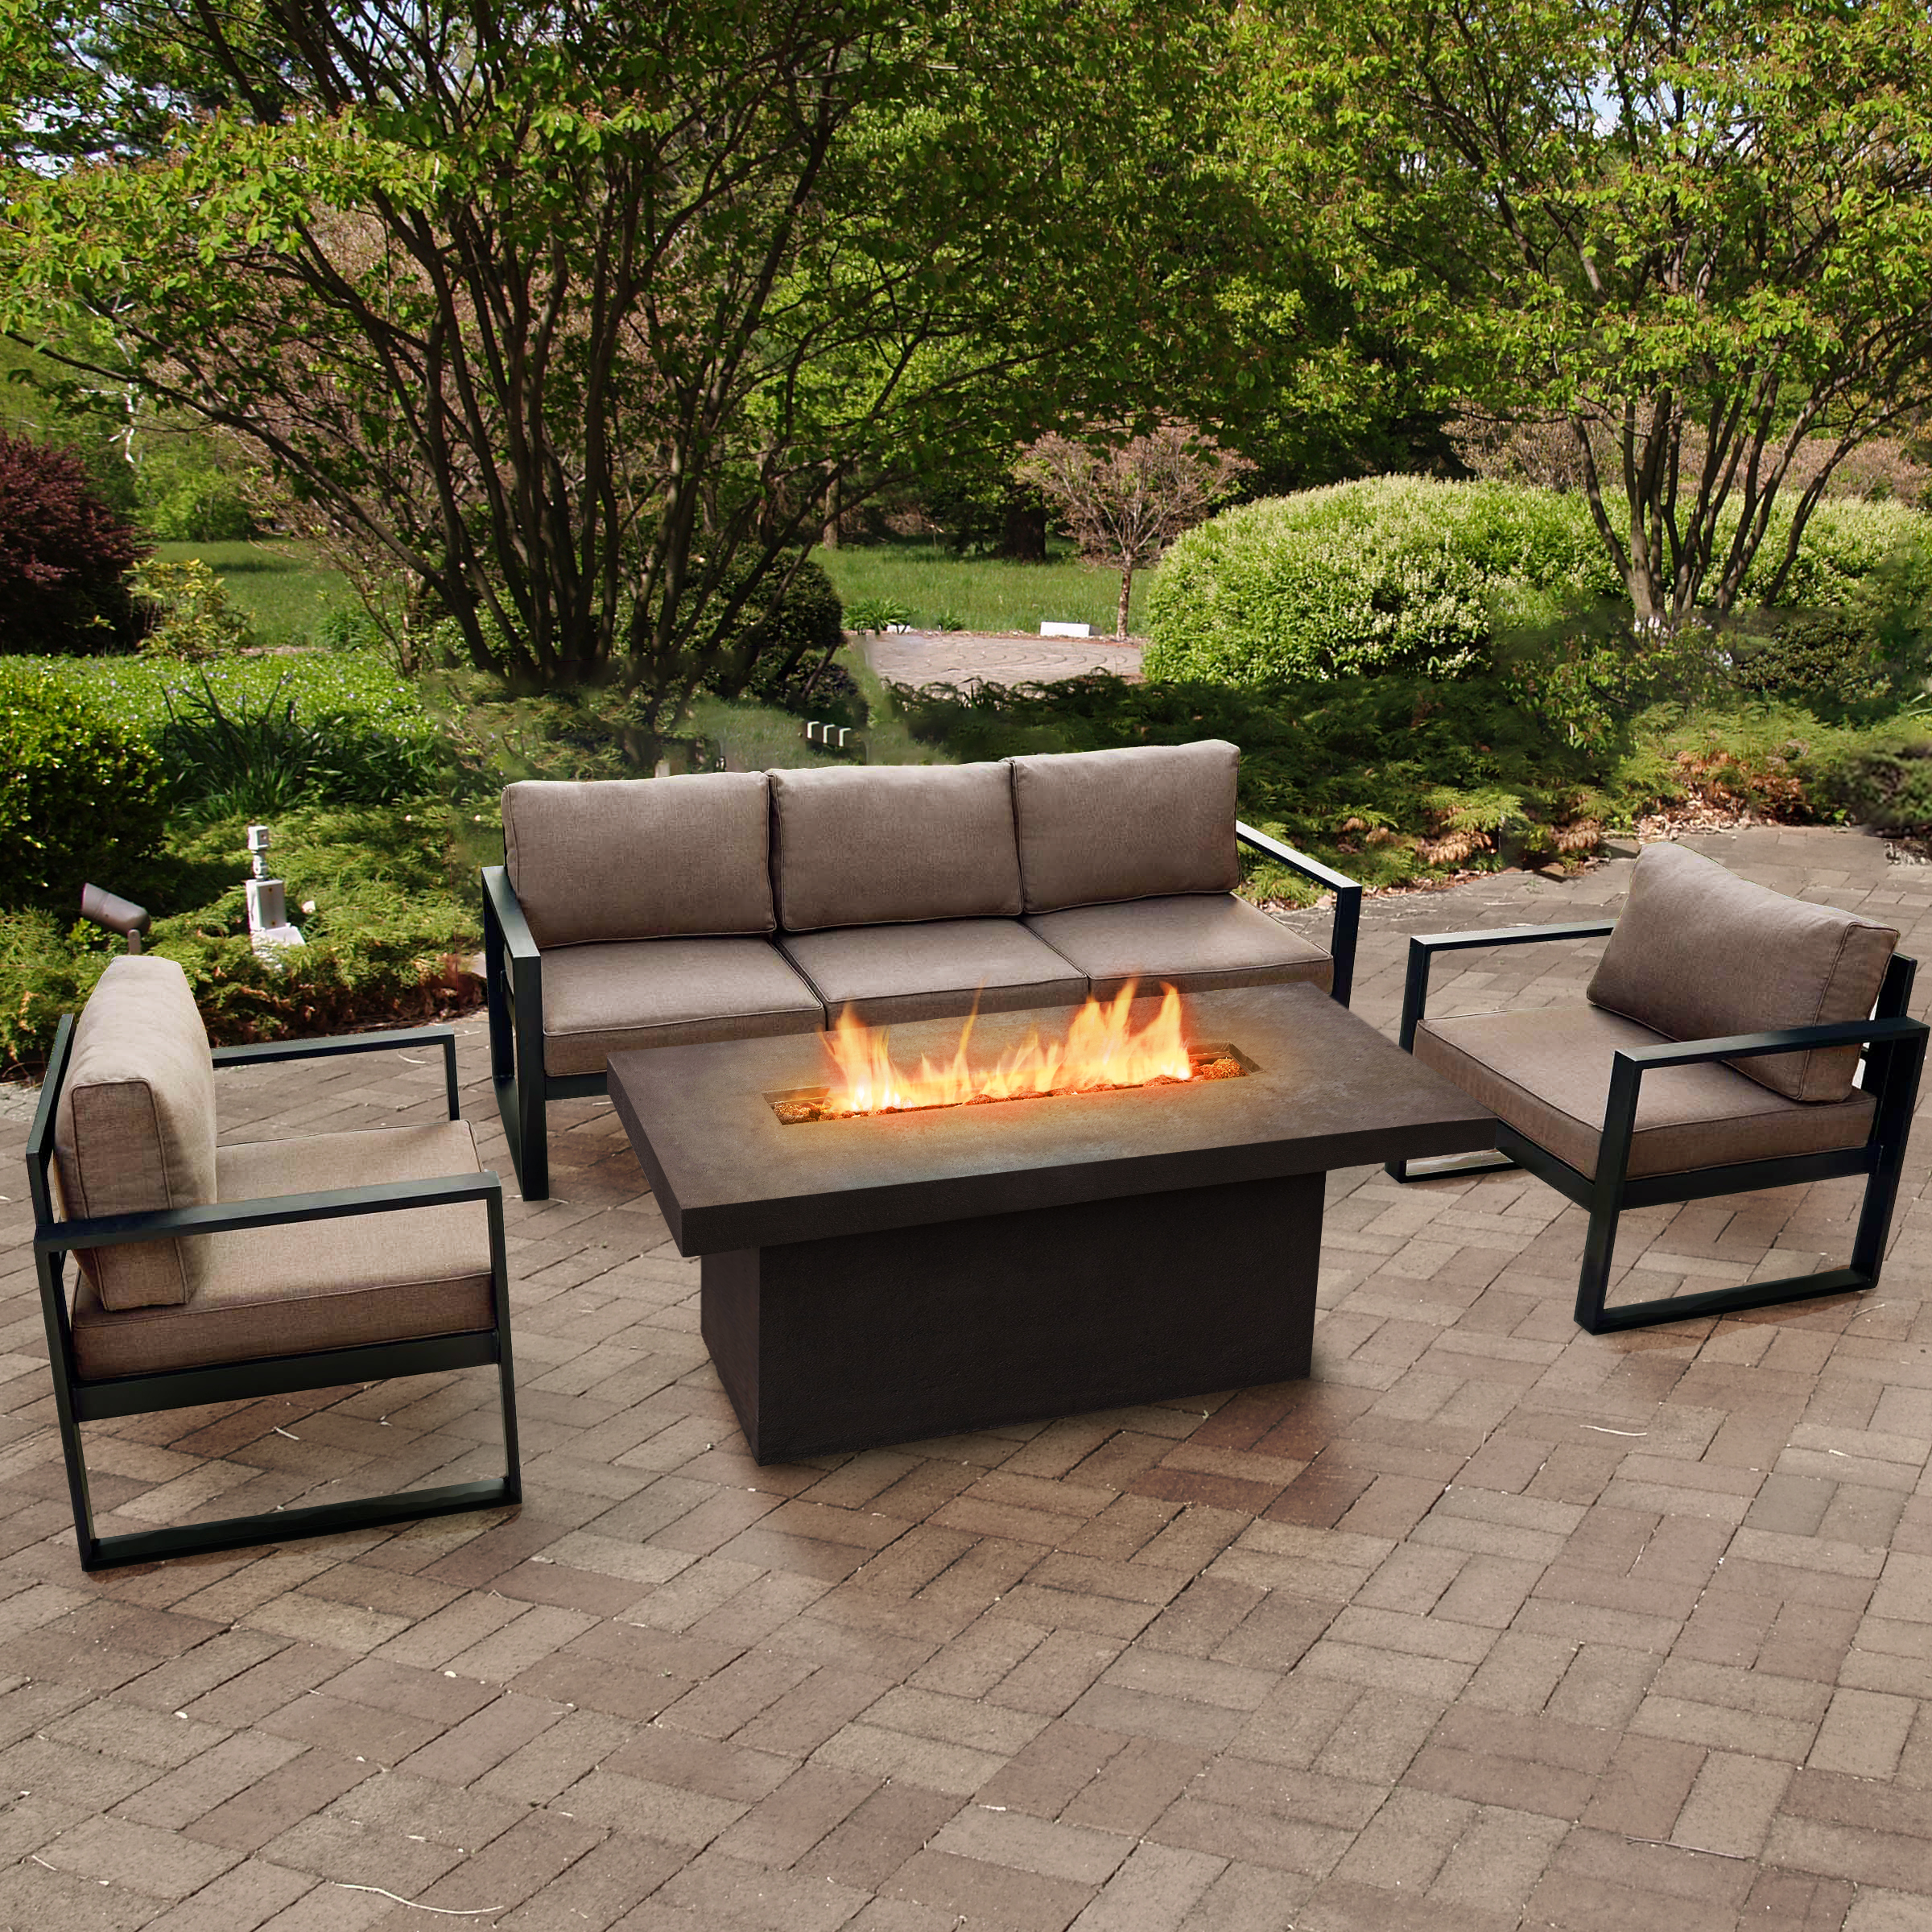 Patio Furniture Temecula 60 About Remodel Home Remodel Ideas With Inside  Size 2400 X 2400